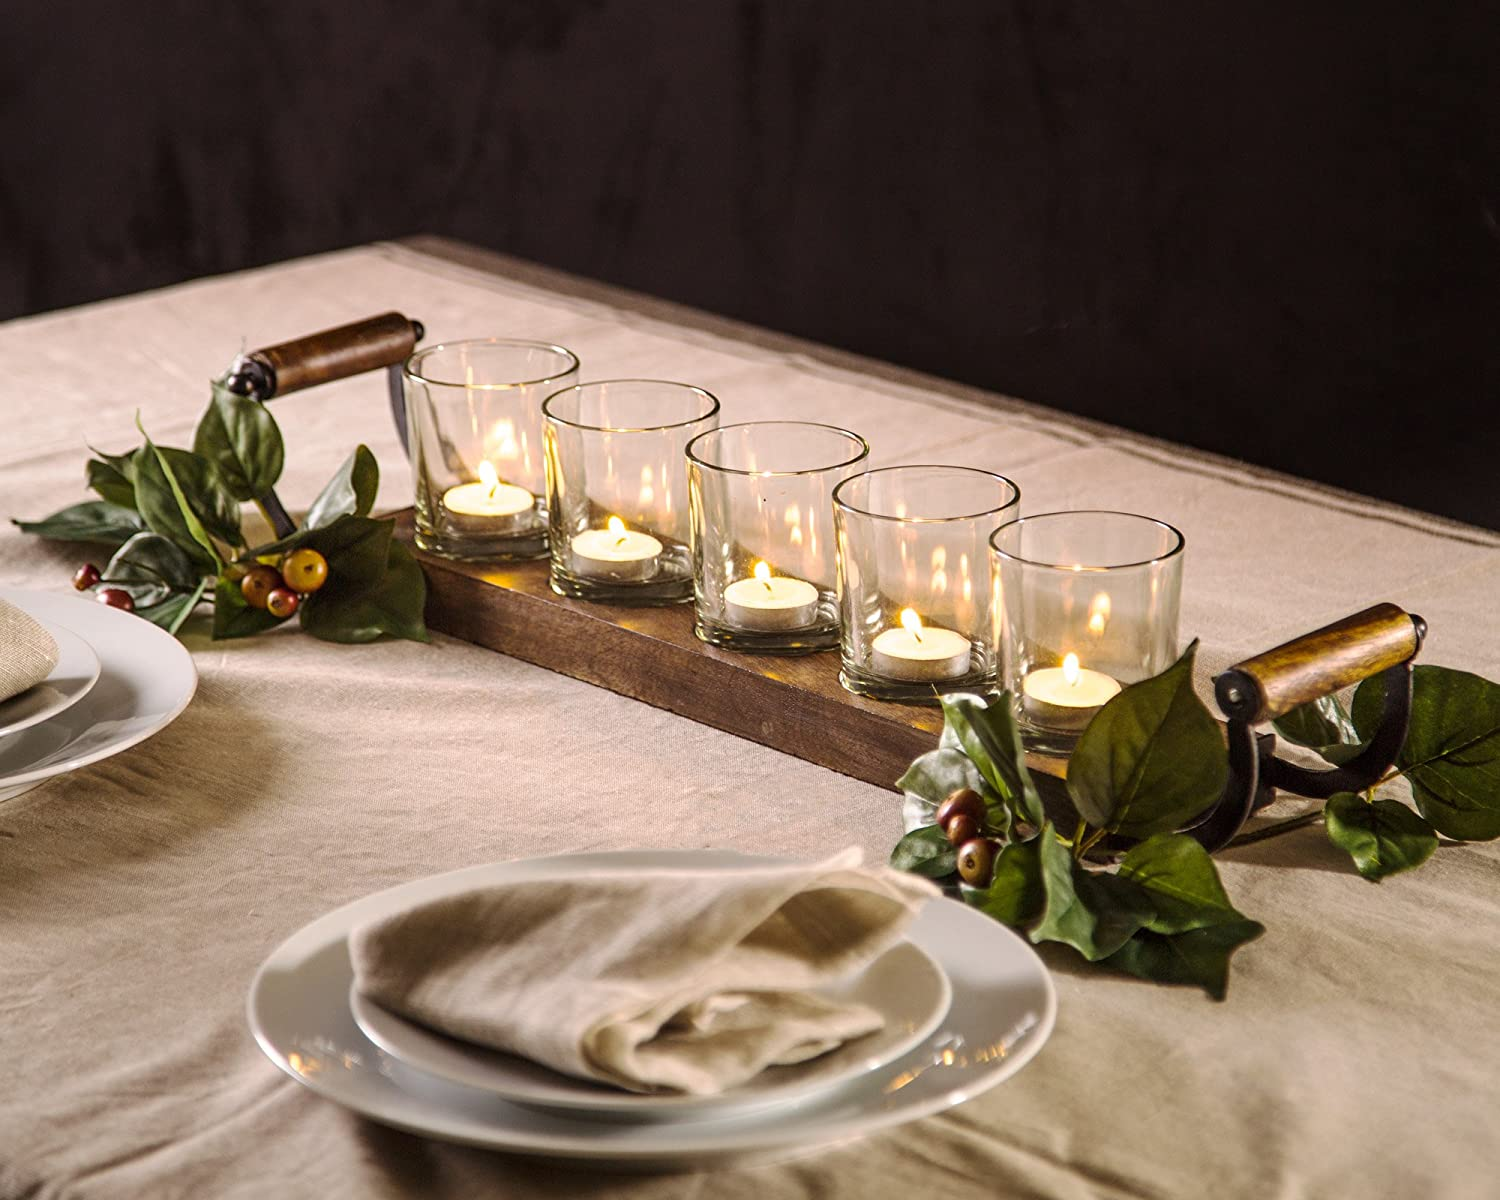 Decorative Votive Candle Holder Centerpiece, 5 Glass Votive Cups On Wood Base/Tray for Wedding Decoration Dining Table with Handles